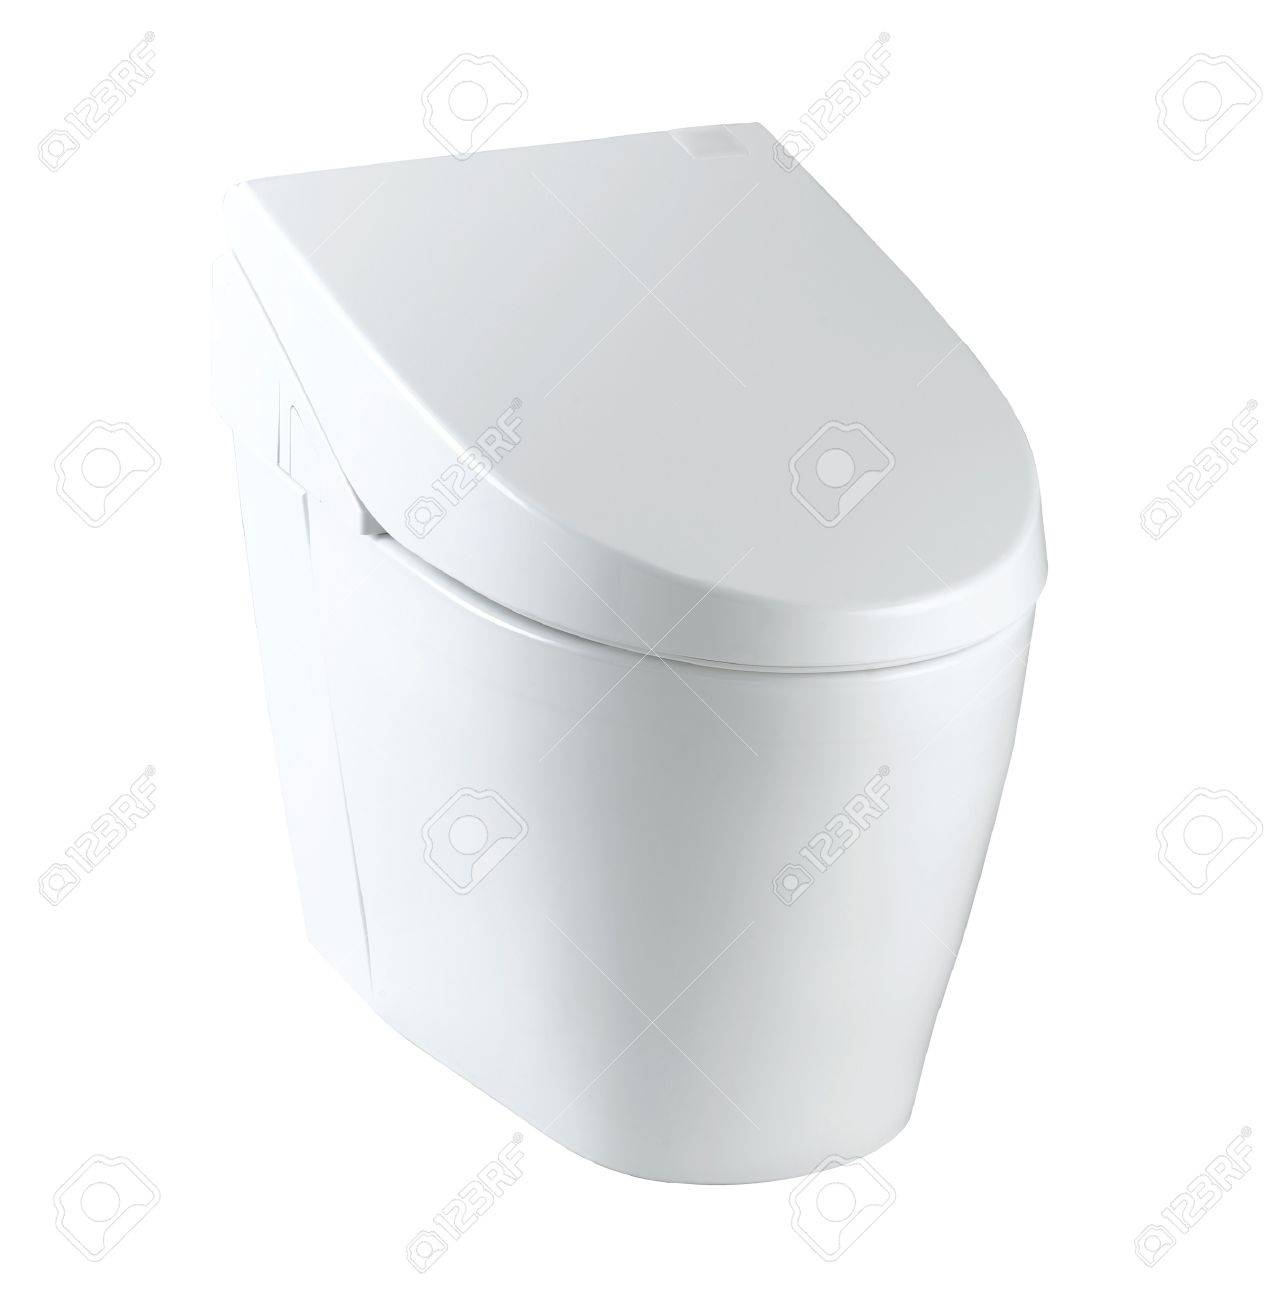 clean and useful toilet bowl wall type great for modern bathroom  - clean and useful toilet bowl wall type great for modern bathroom stockphoto